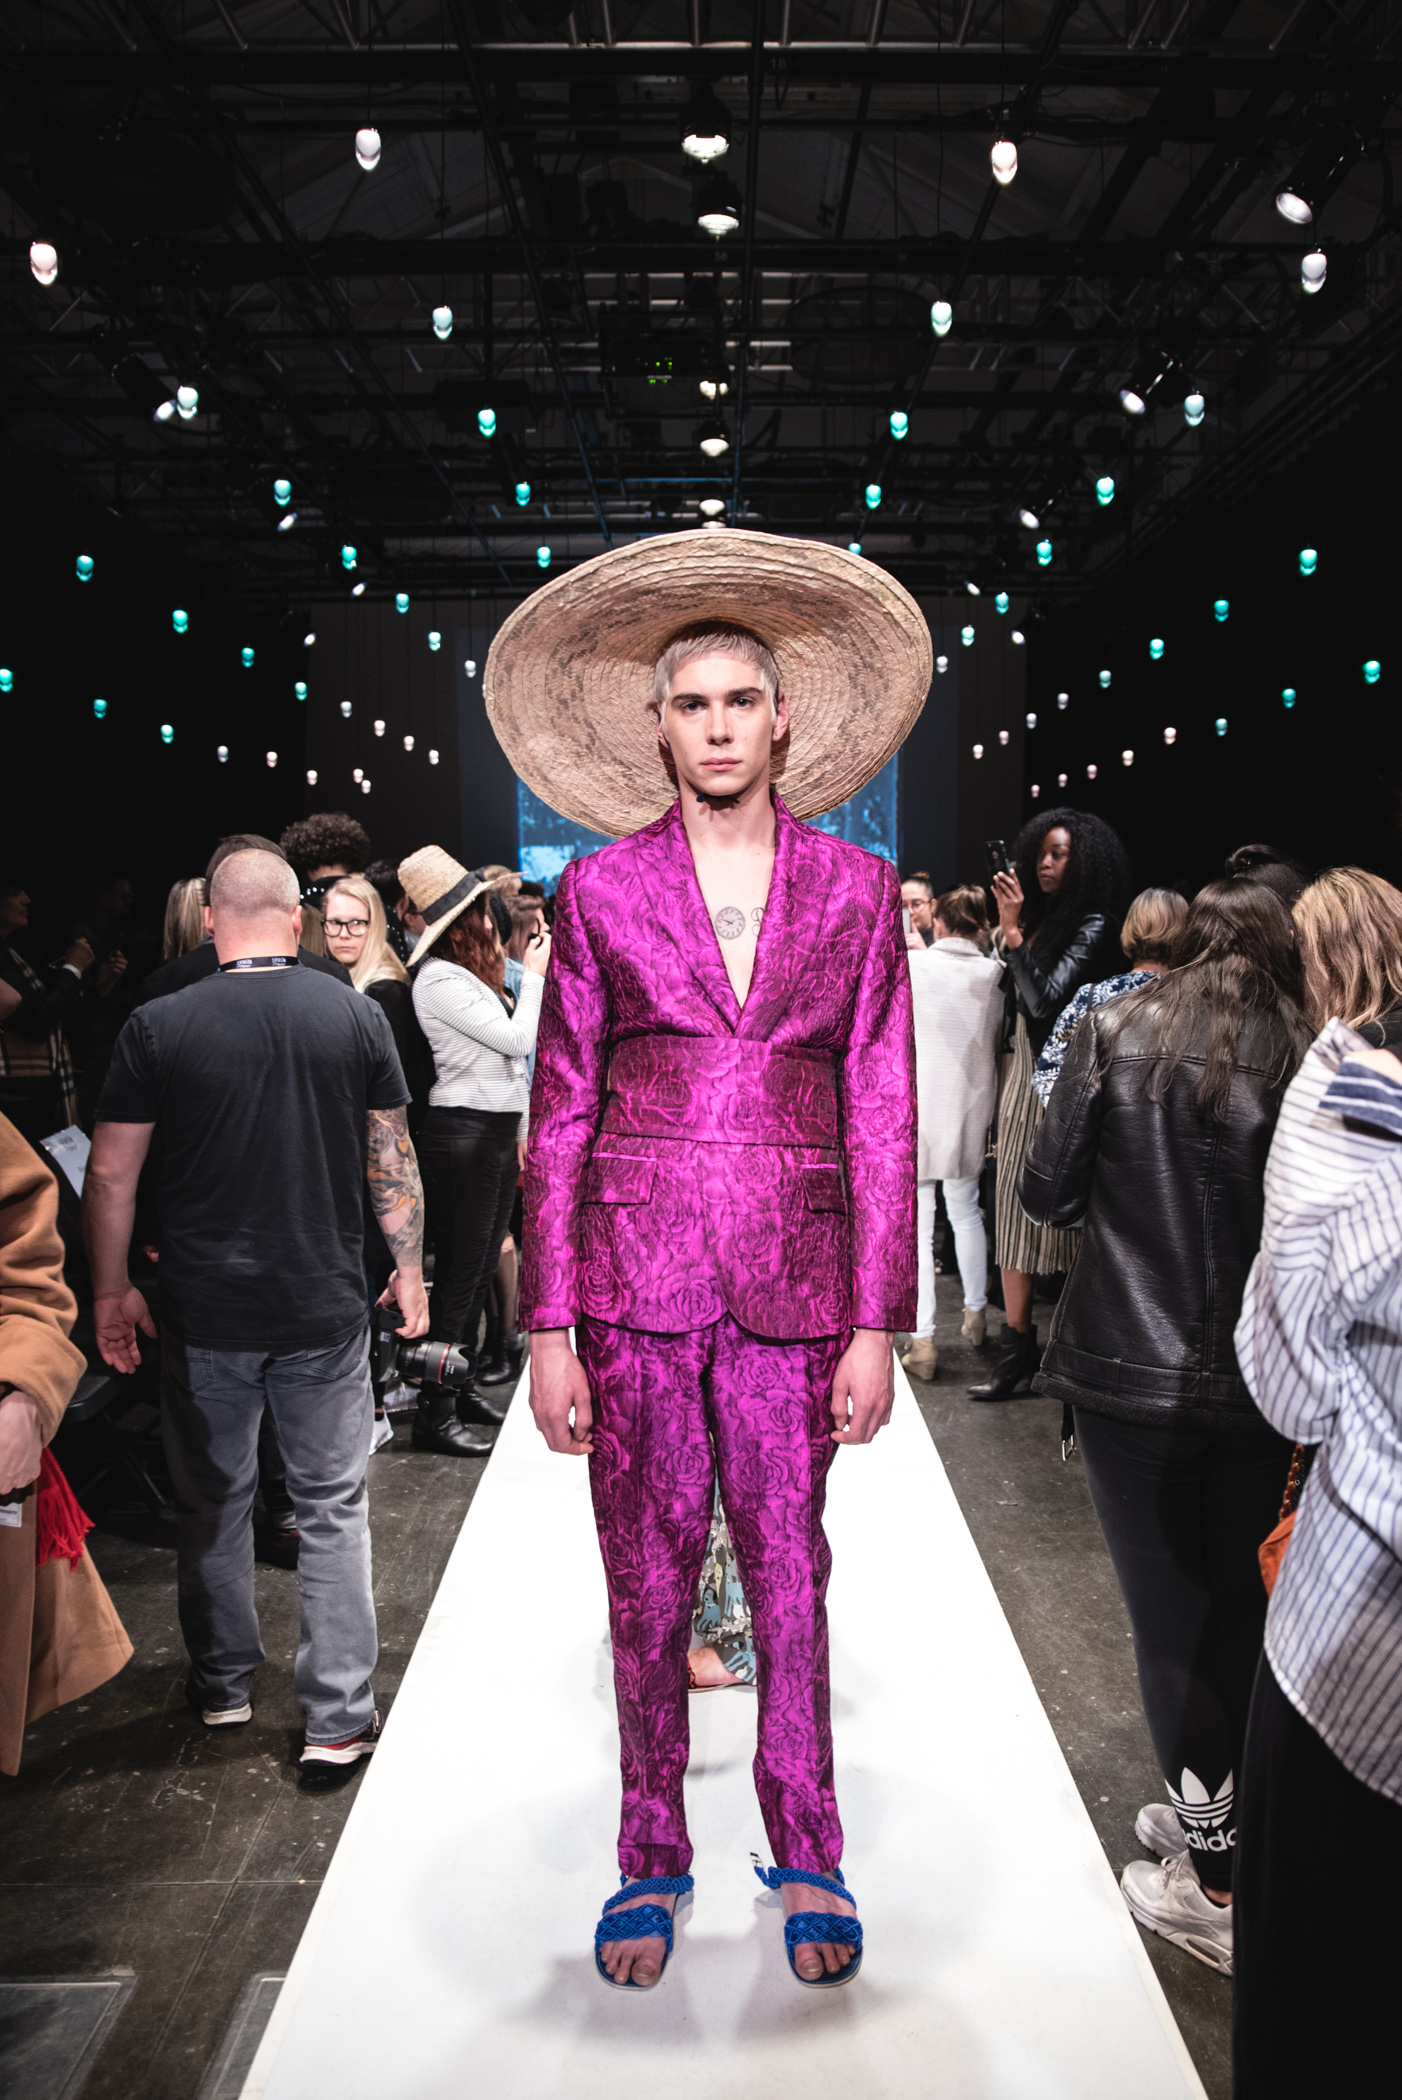 Montreal Fashion Preview, 2017